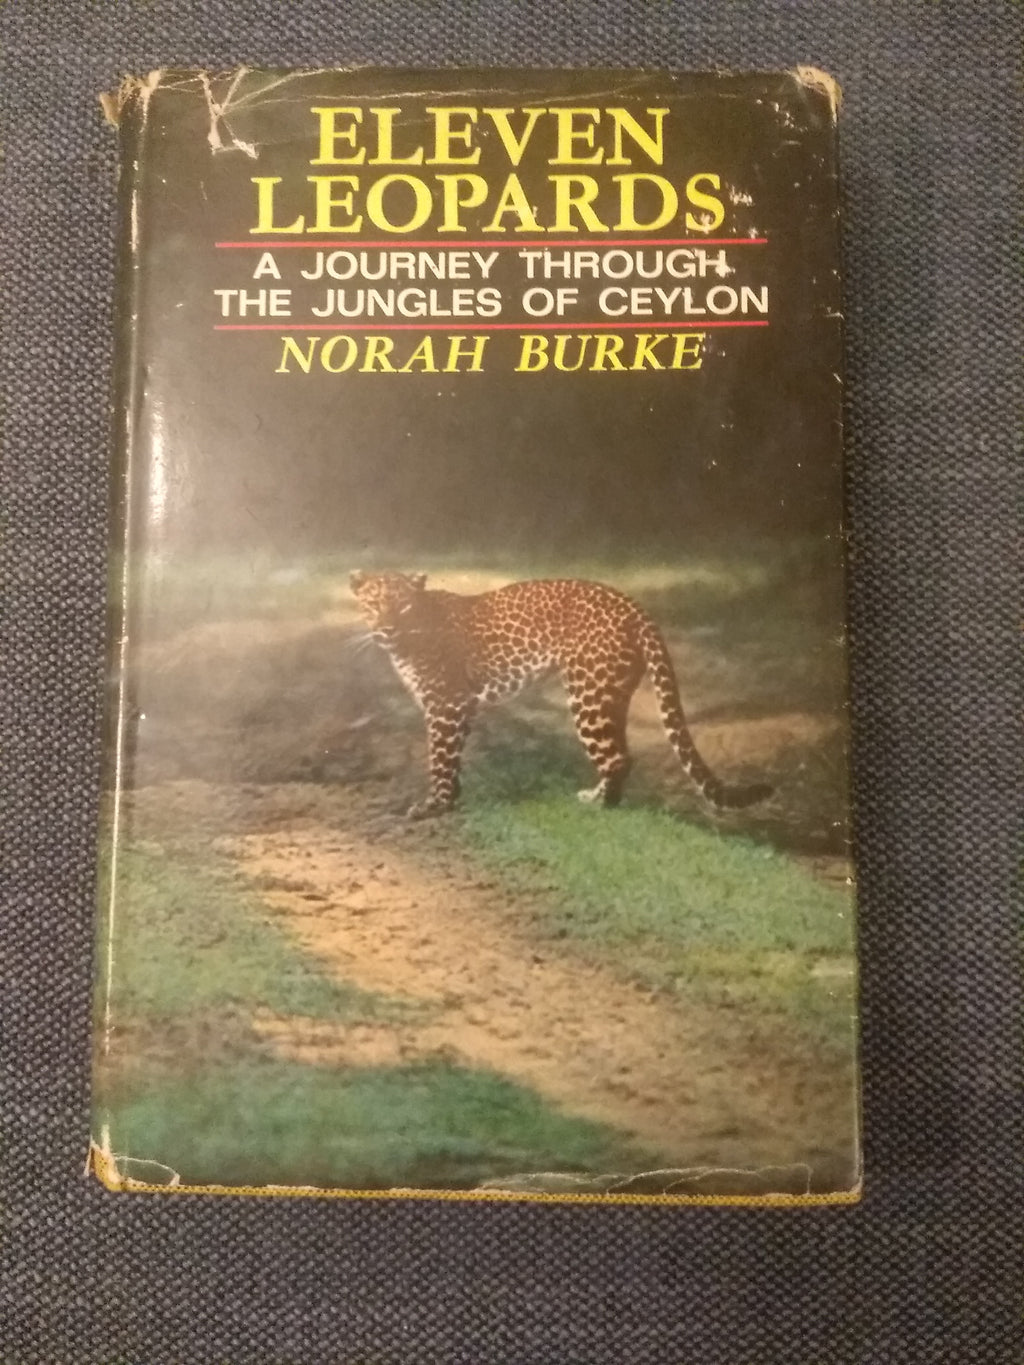 Eleven Leopards: A Journey Through The Jungles of Ceylon, by Norah Burke